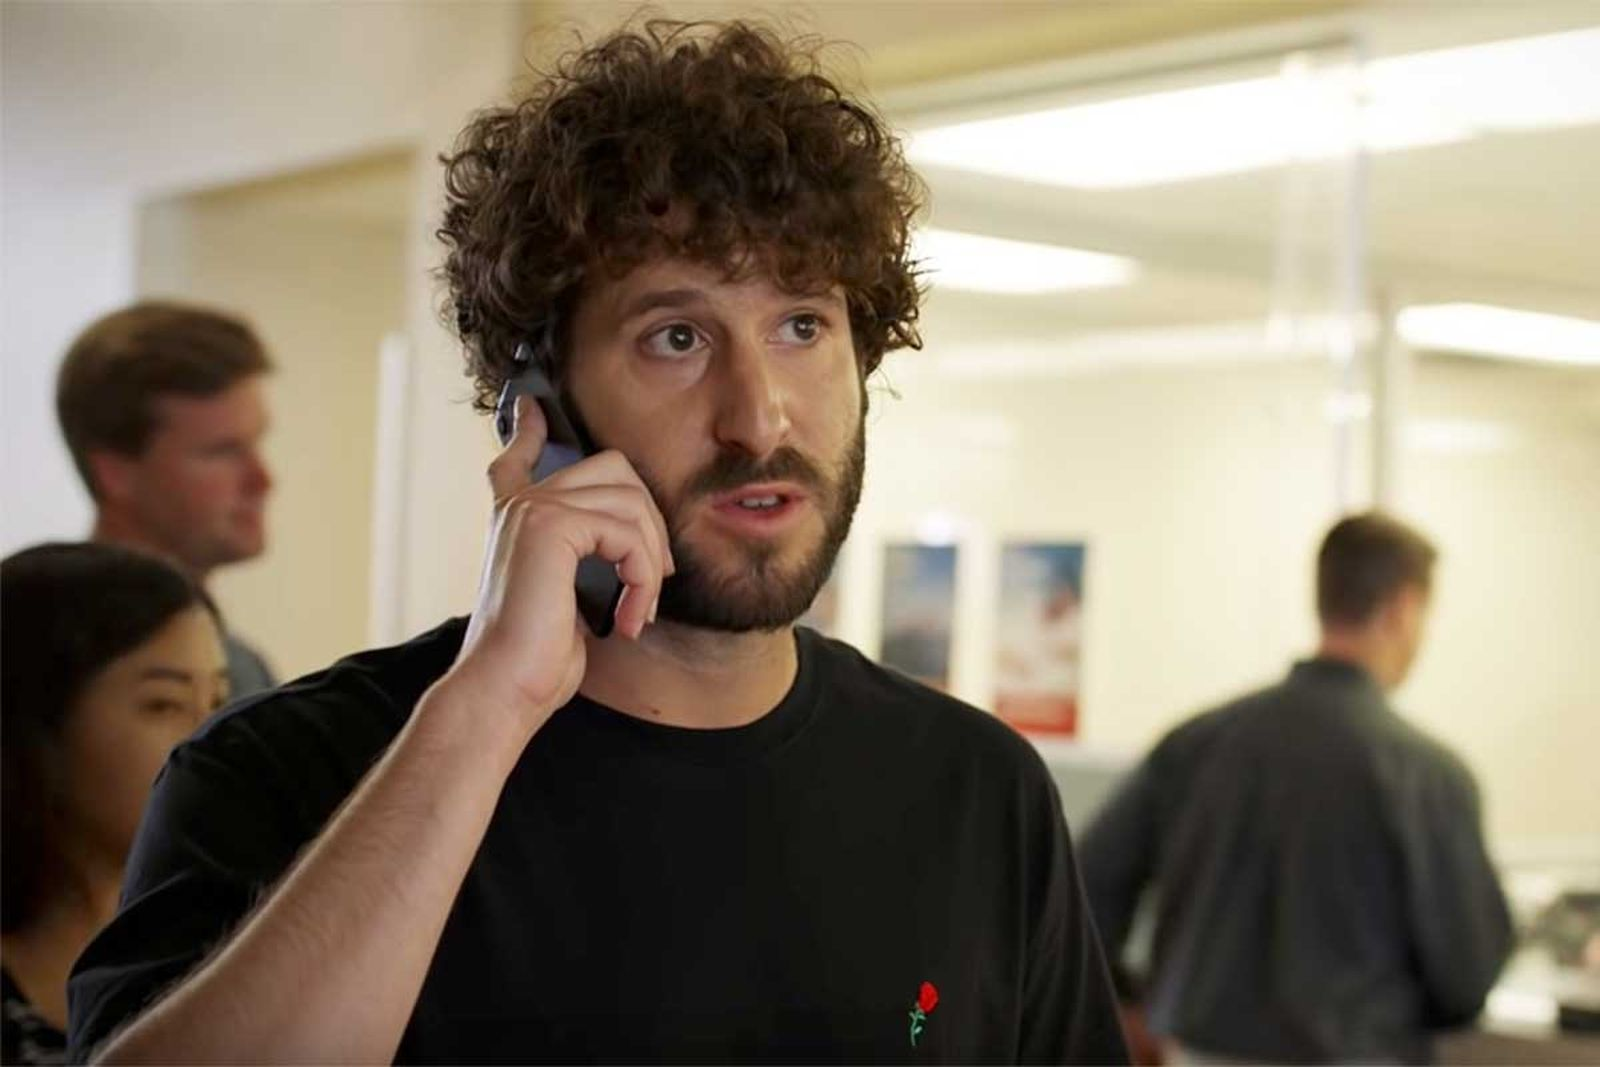 Lil Dicky's show 'Dave' on FXX